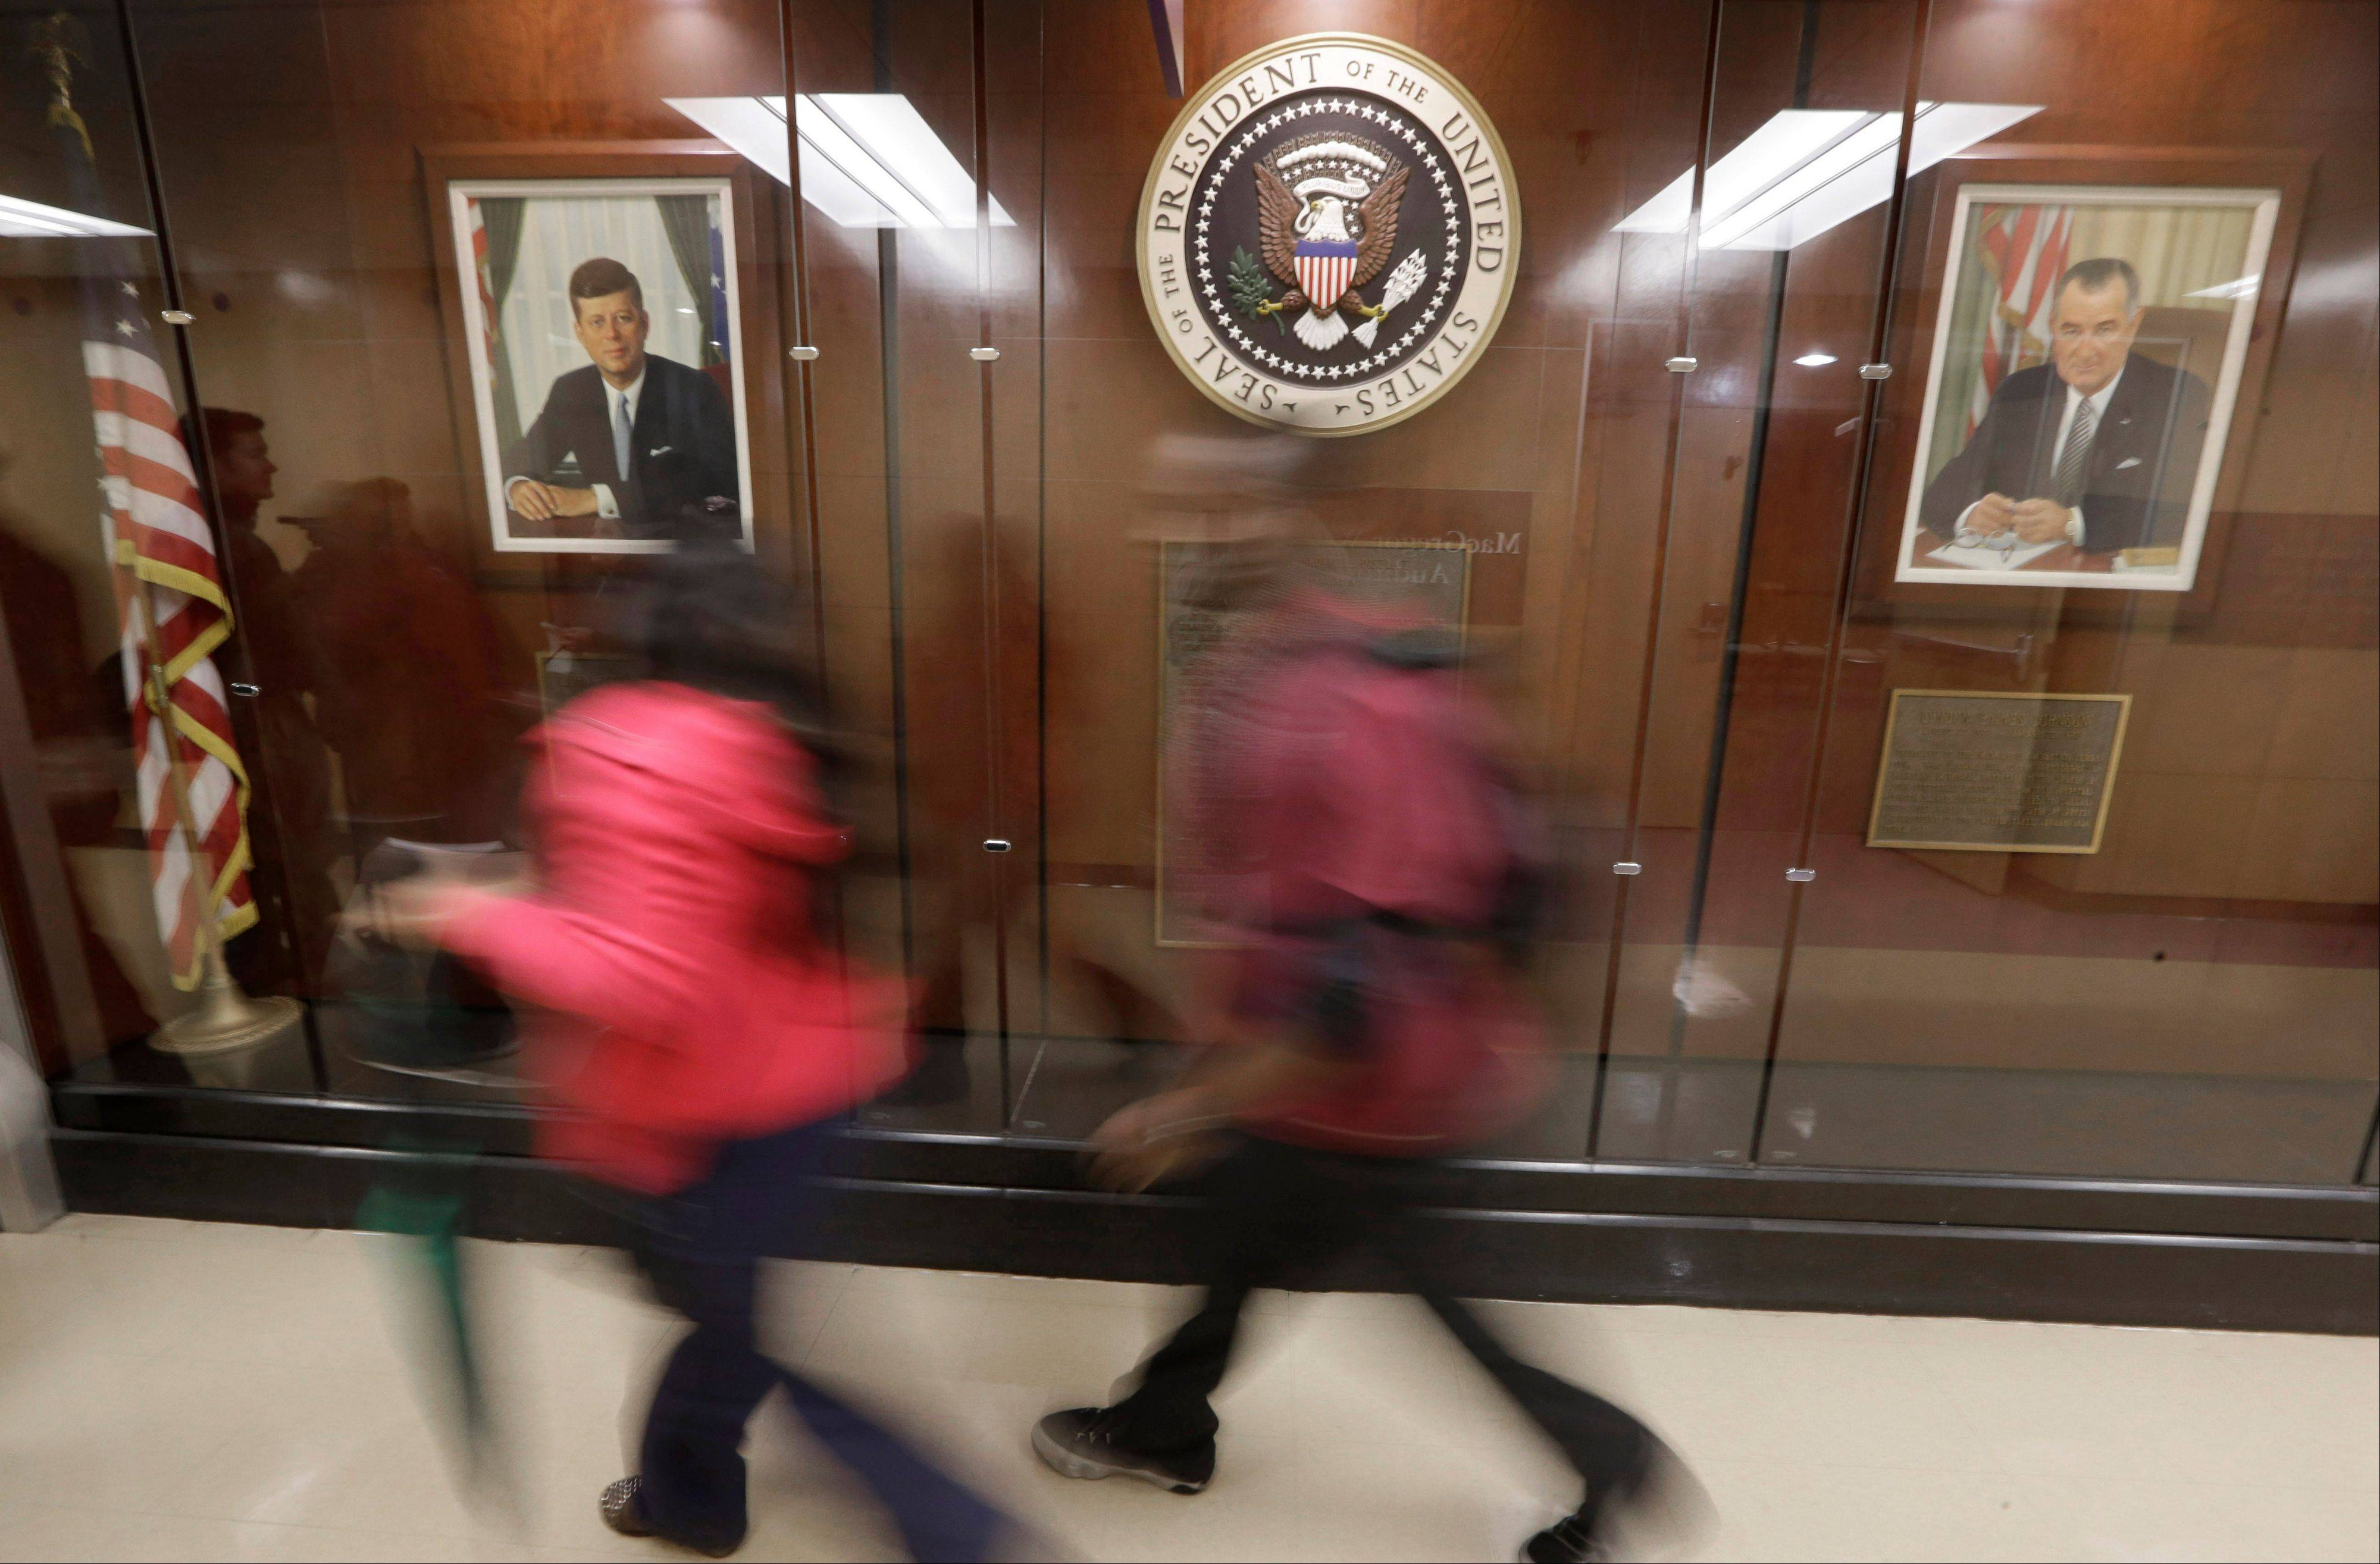 This hallway in Dallas' Parkland Memorial Hospital features a display that includes portraits of John F. Kennedy and Lyndon B. Johnson and the presidential seal.